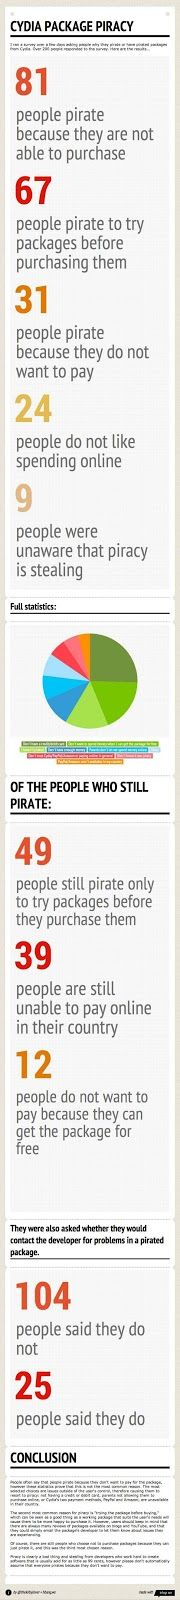 Latest Google release - Google releases Infographic on Cydia Package Piracy  Appsread.com explains Infographics on Cydia Package Piracy    Watch Infographics @ http://www.appsread.com/2013/04/latest-google-release-google-releases.html    RELATED POSTS    Latest VPN software    http://www.appsread.com/2013/01/best-vpn-latest-vpn-software.html    Top Facebook app to find your soulmate -         http://www.appsread.com/2012/10/top-facebook-app-top-facebook-app-to.html